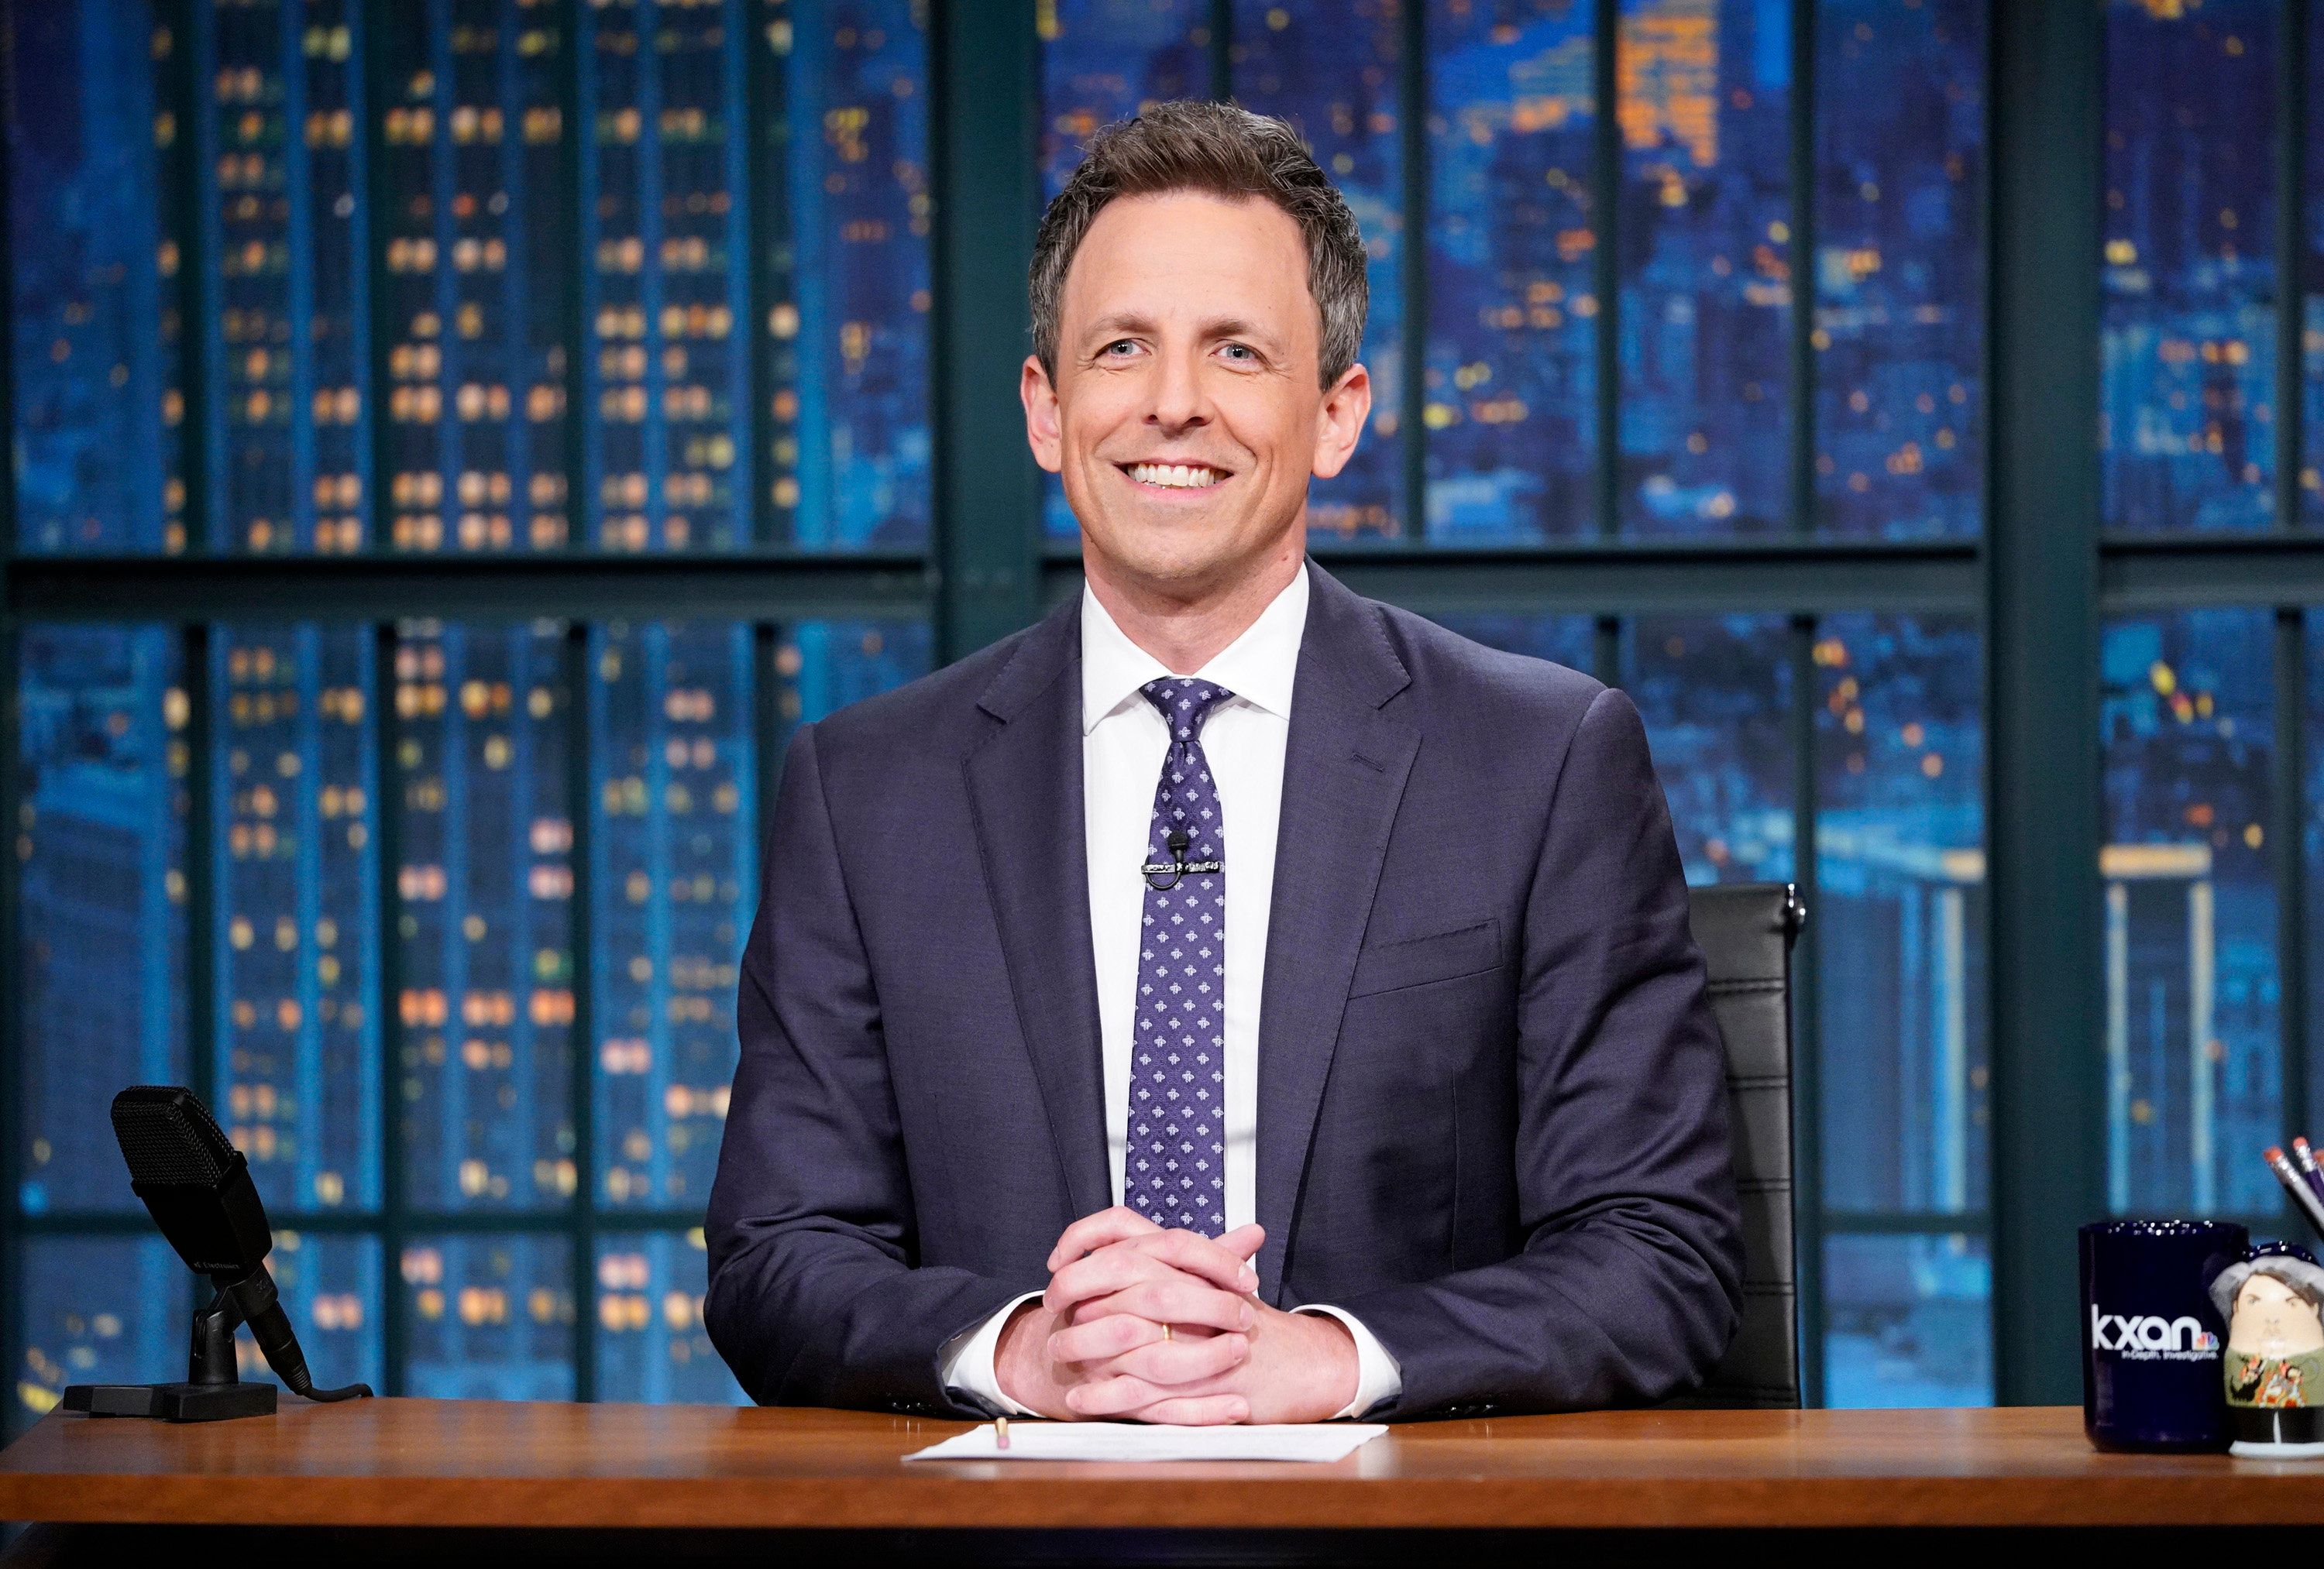 Seth Meyers said he turned down Donald Trump's conditions for appearing on his show.